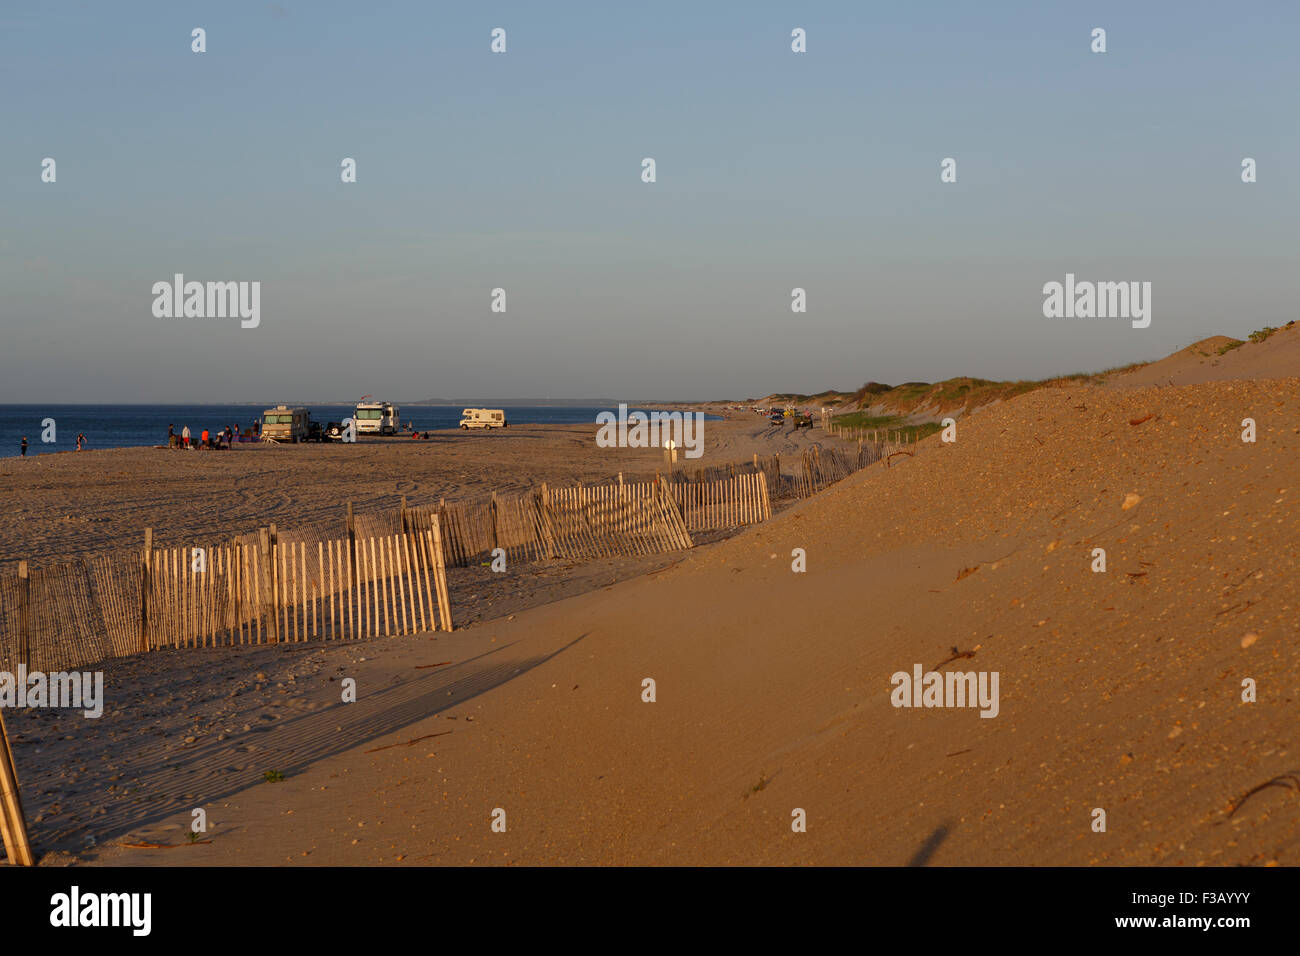 Campervans at Sandy Neck beach Barnstable Cape Cod Massachusetts USA - Stock Image